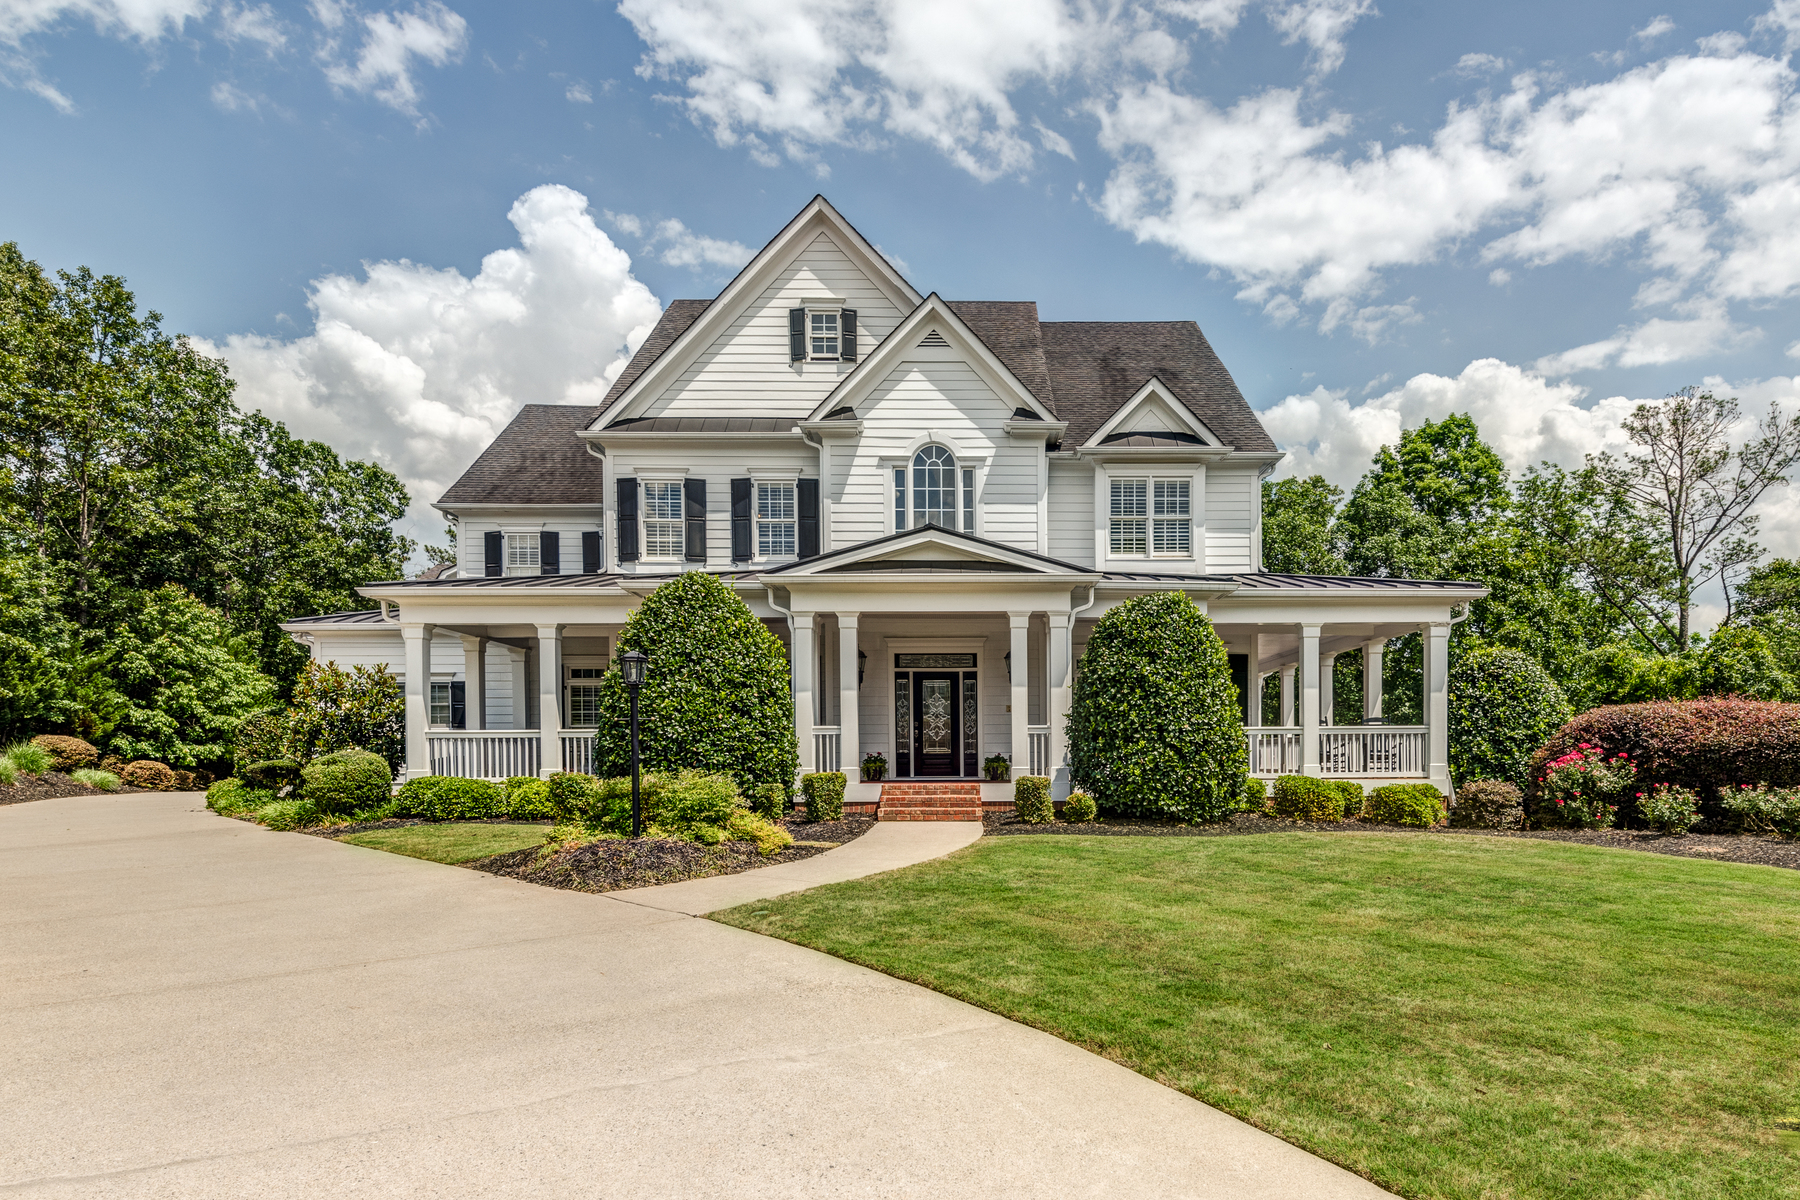 Single Family Home for Active at Picturesque Farmhouse-Style Home 185 Sherwood Pass Roswell, Georgia 30075 United States